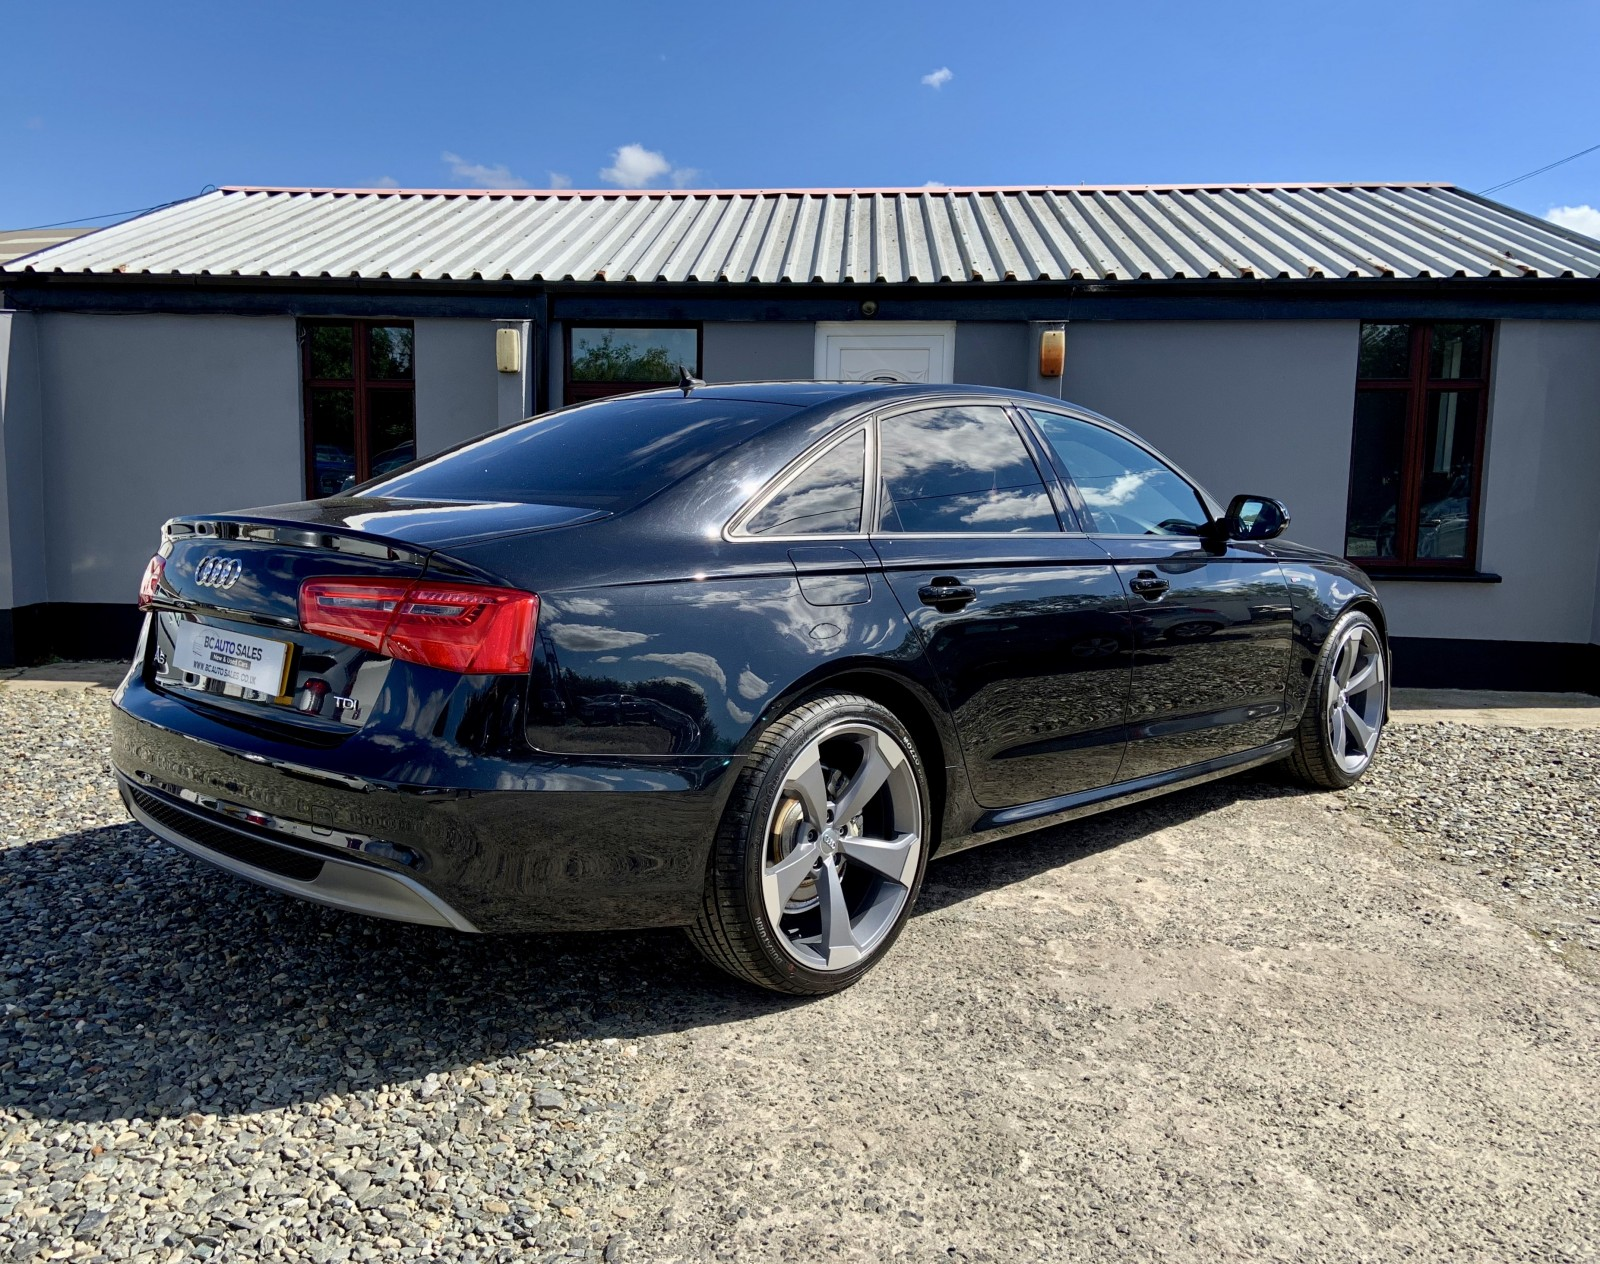 2013 Audi A6 TDI S LINE BLACK EDITION Diesel Manual – BC Autosales 17A Airfield Road, Eglinton, Londonderry BT47 3PZ, UK full